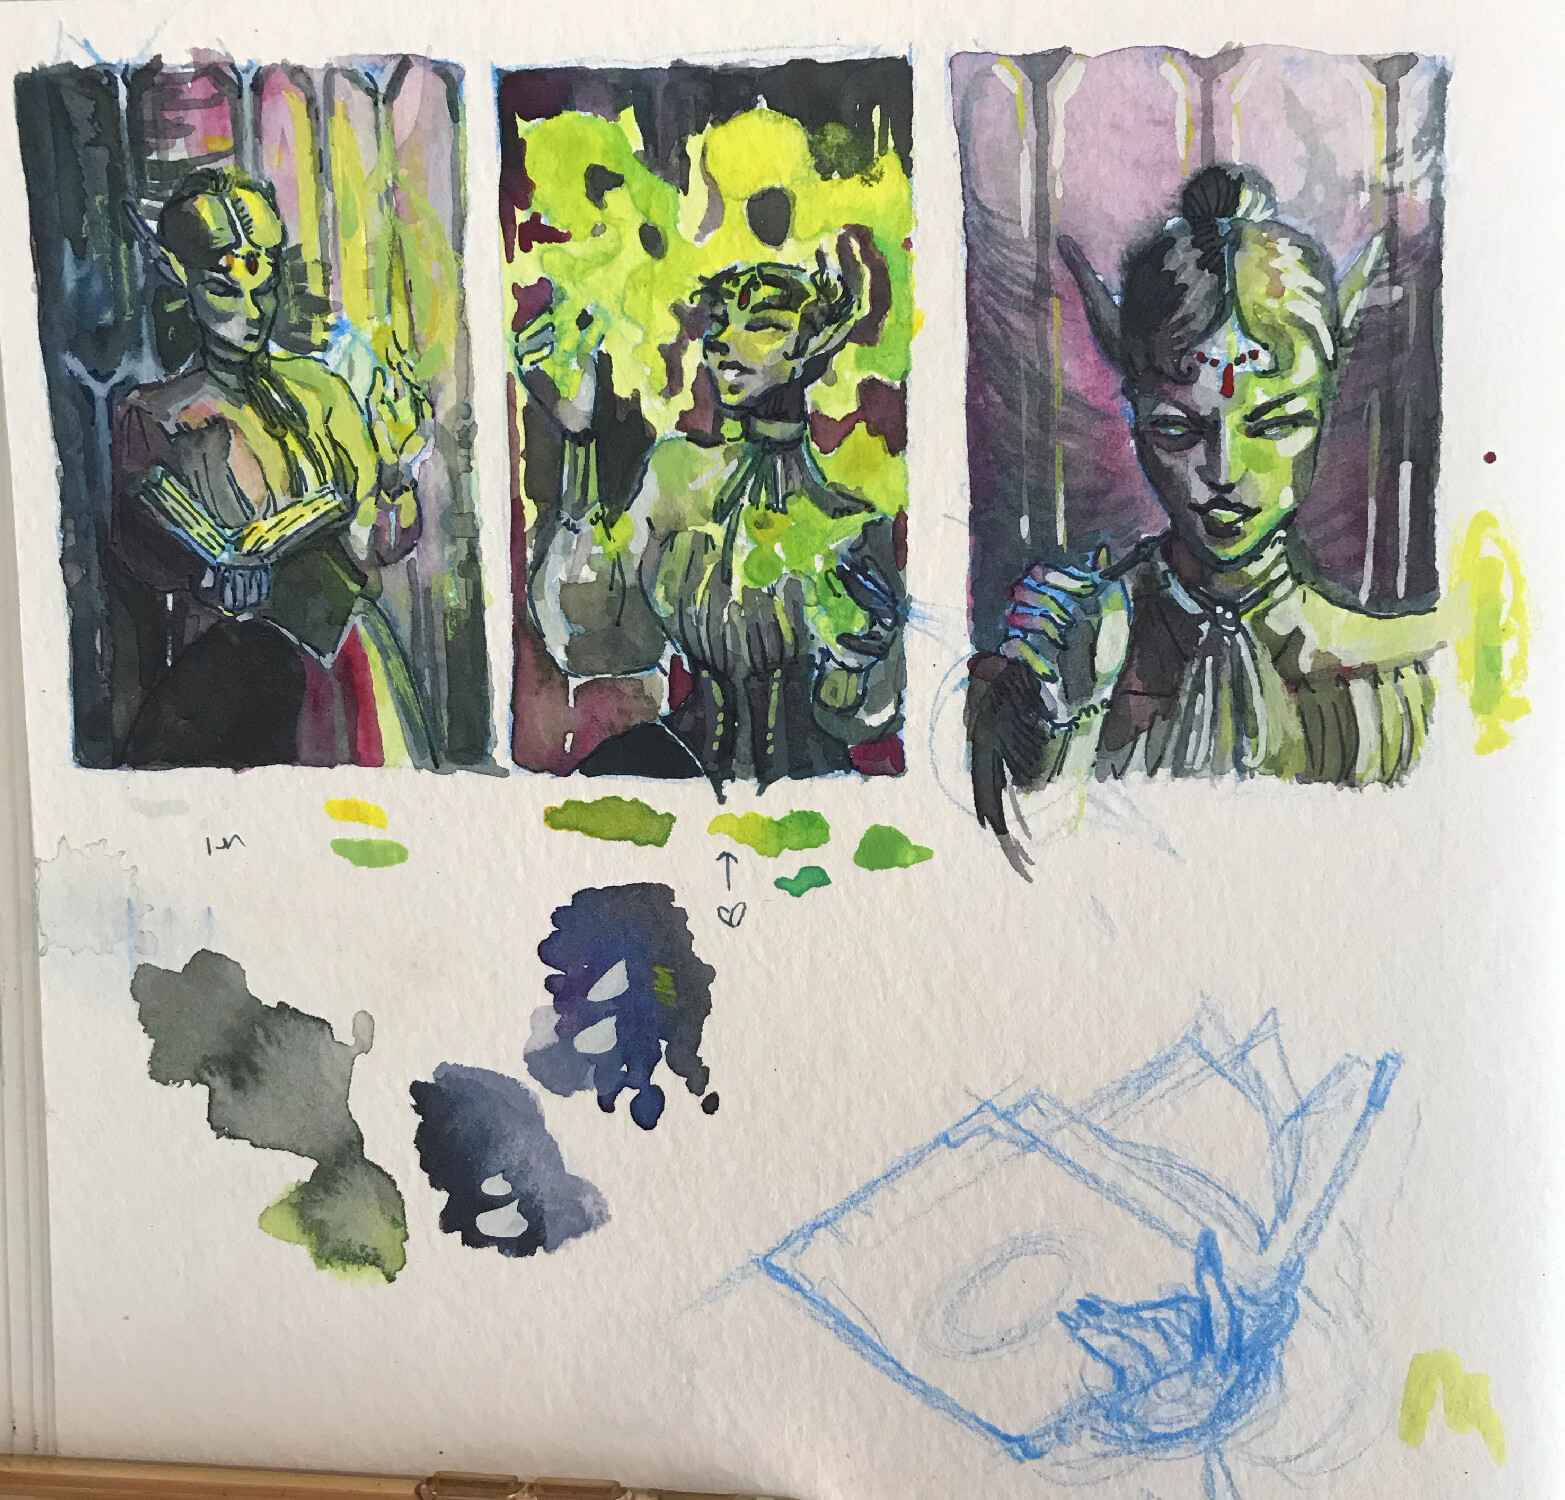 thumbnails for the previous painting!